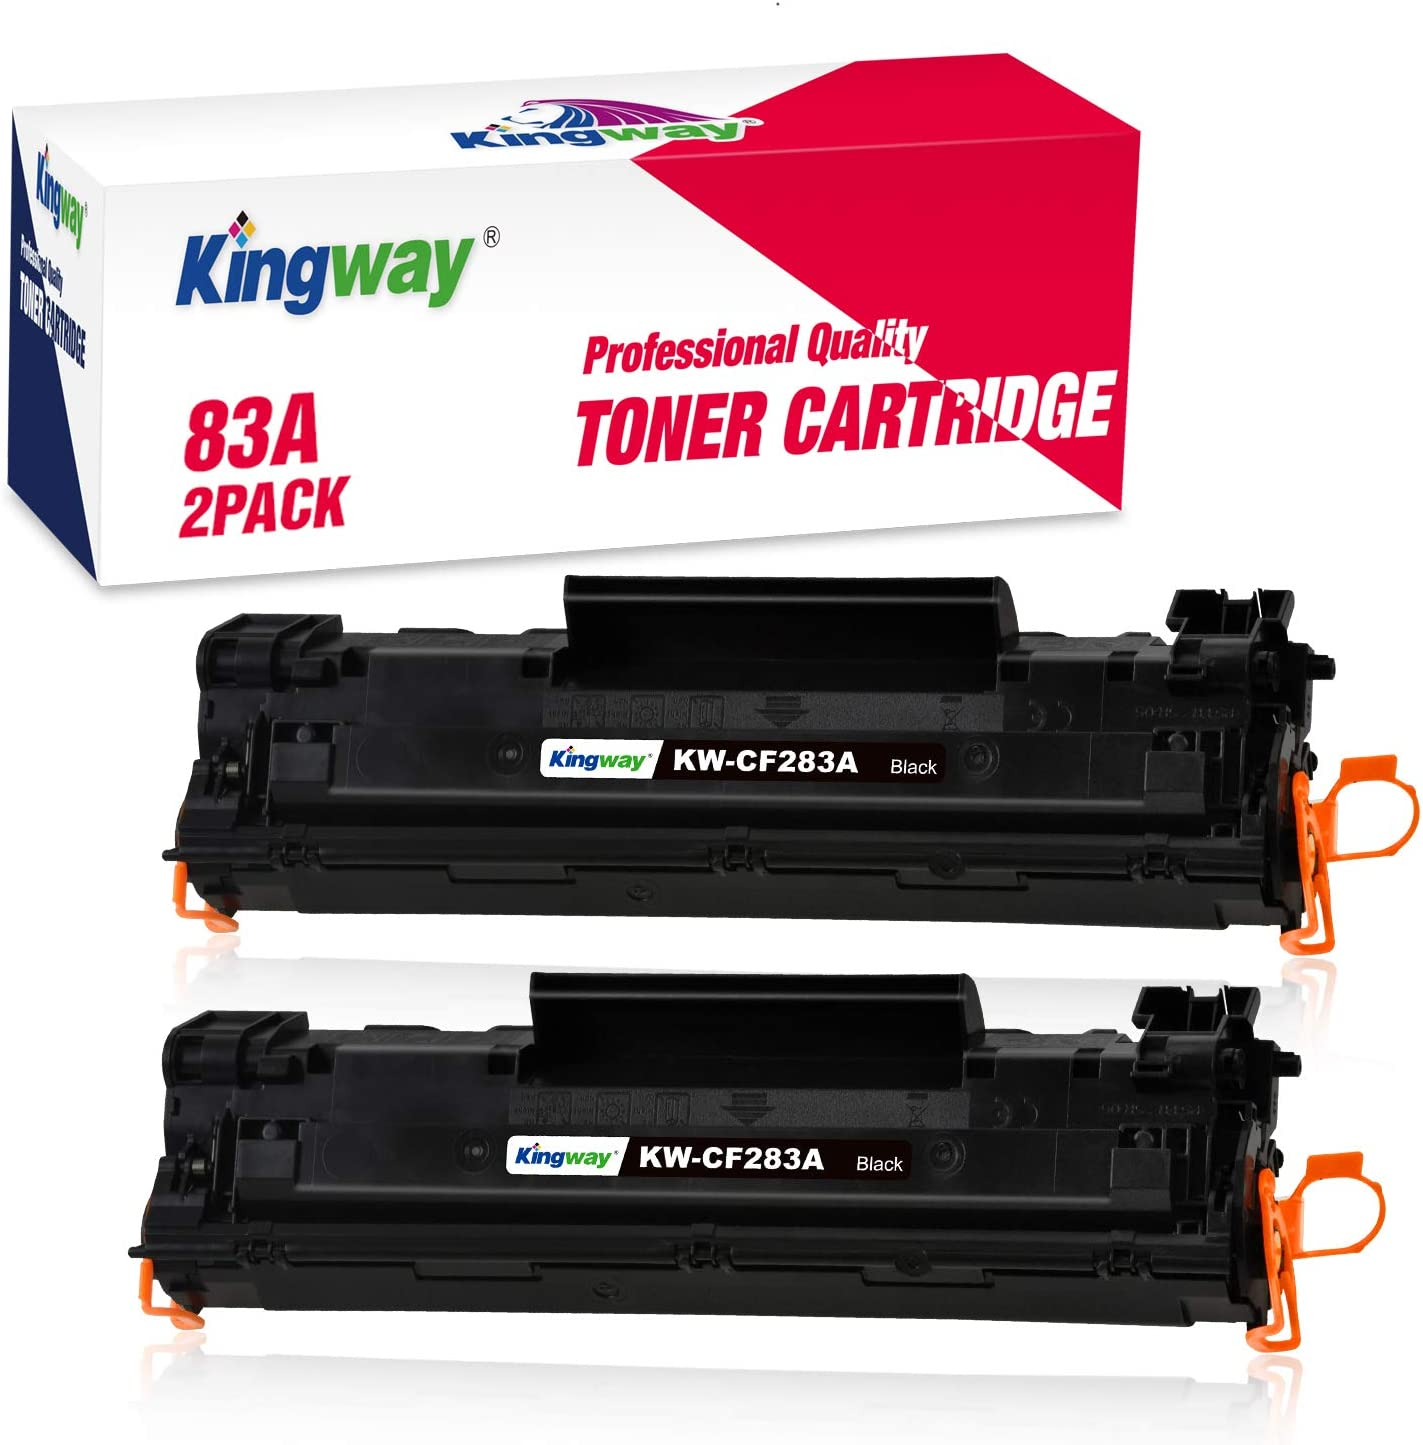 Kingway Compatible CF283A Toner Cartridge Replacement for HP 83A CF283A Black Toner Cartridges Work with HP Laserjet Pro MFP M127fn M127fw M201dw M125nw M225dw M225dn Printers (2 Pack)